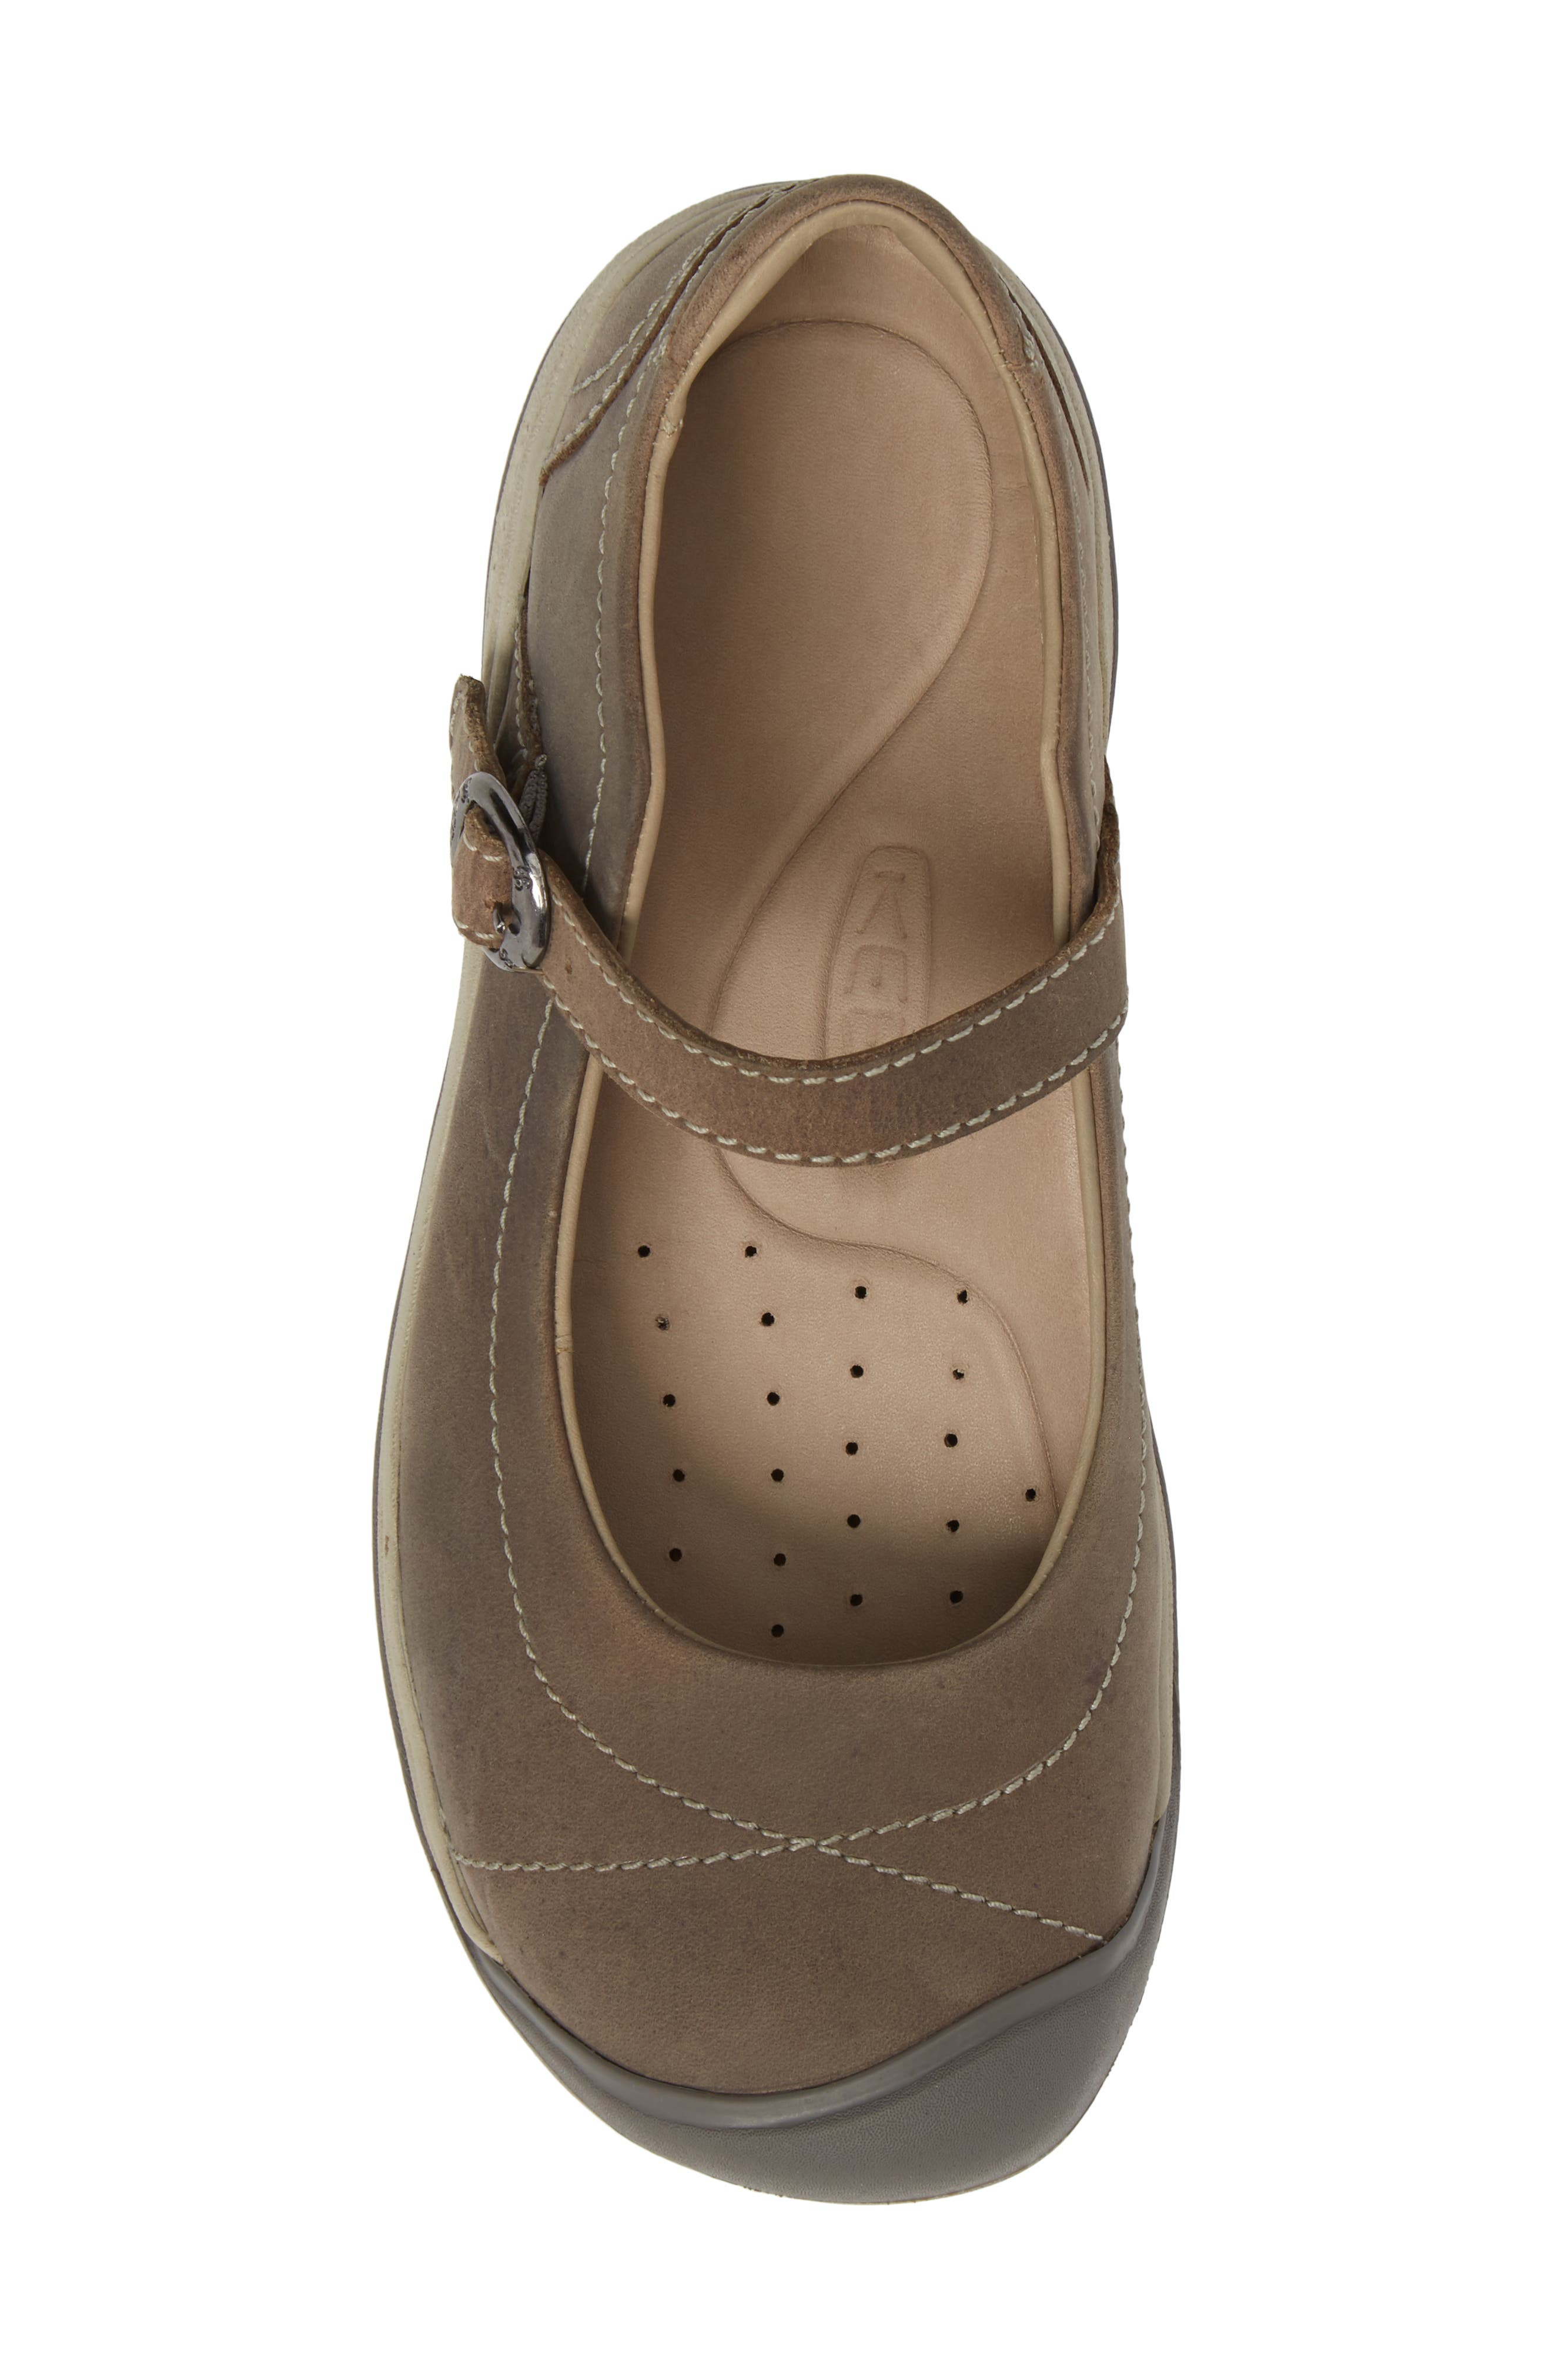 KEEN, Presidio II Mary Jane Flat, Alternate thumbnail 5, color, PALOMA/ SILVER BIRCH LEATHER